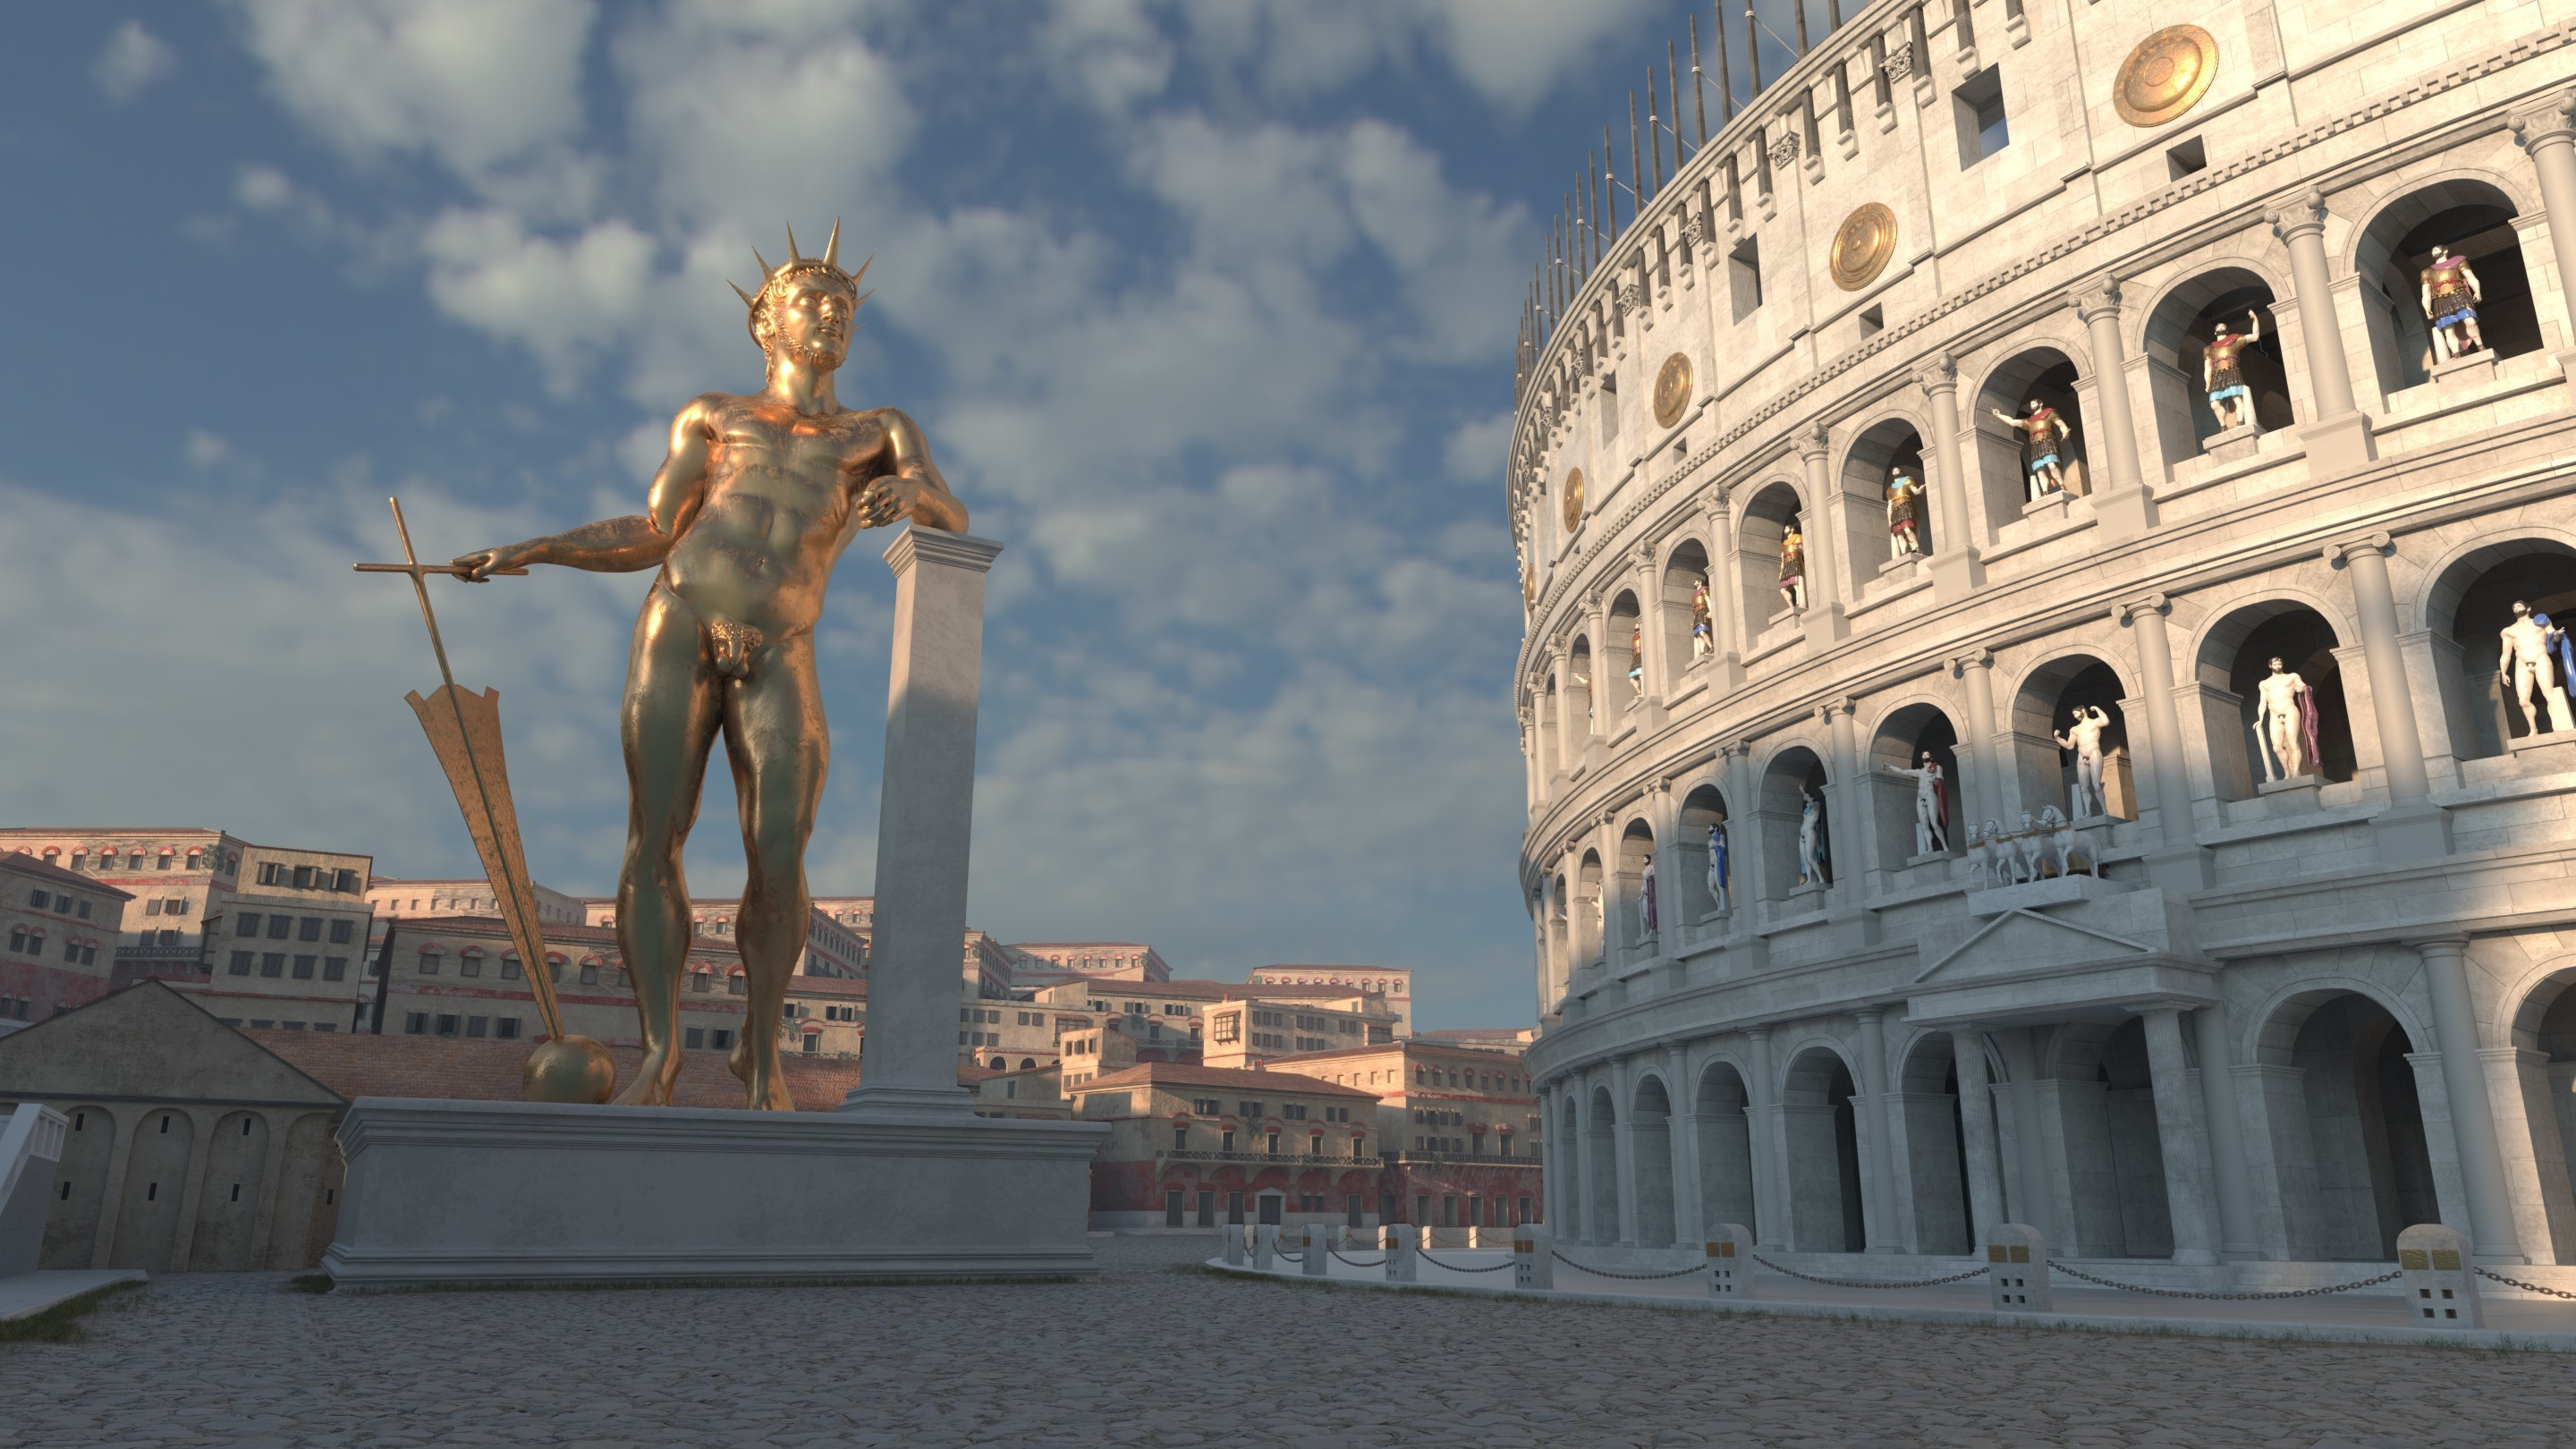 Making a piece of ancient Rome a UNICO digital collectible!